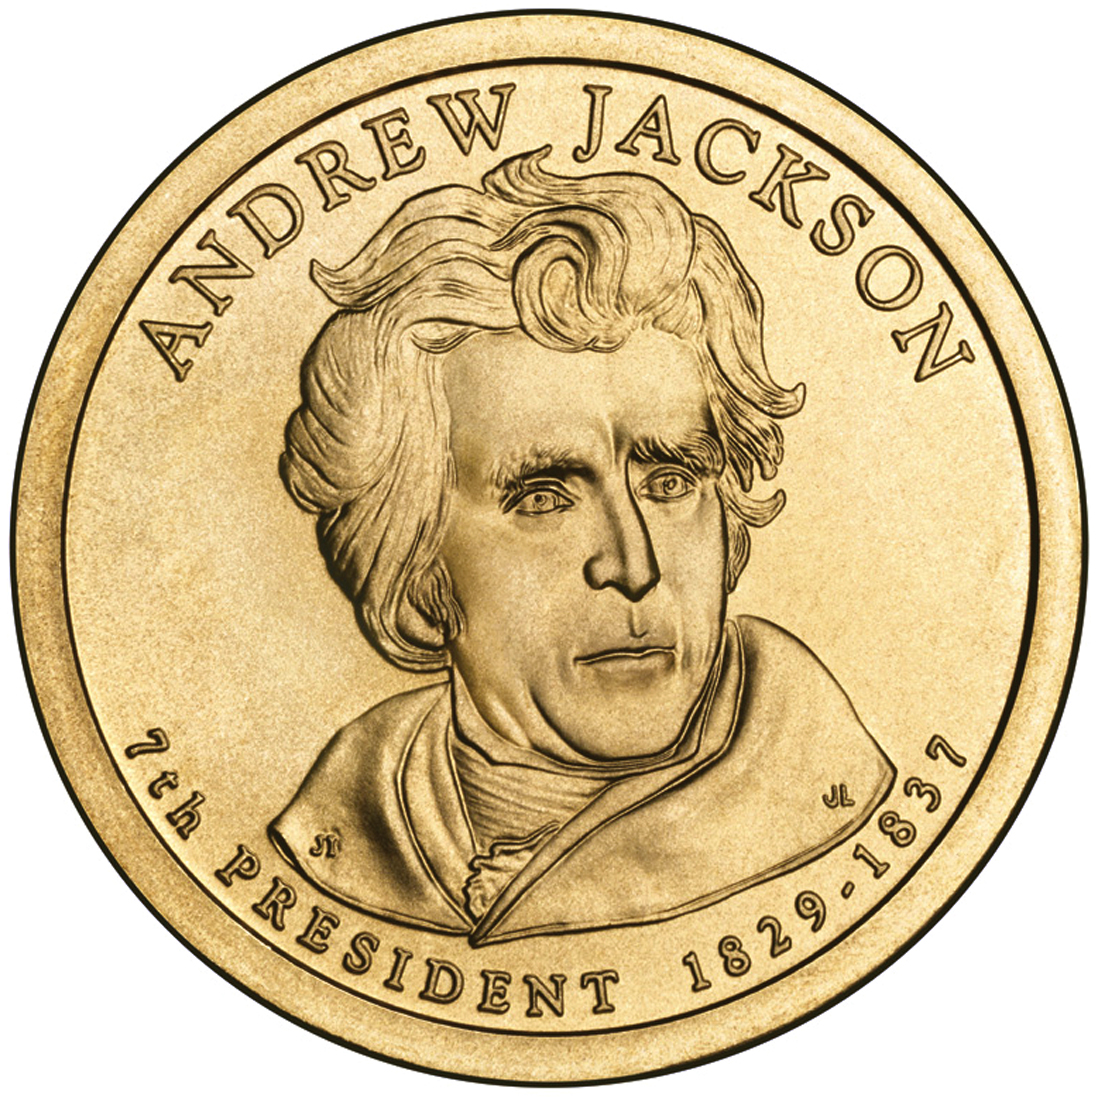 Kitchen cabinet us government - File Andrew Jackson Presidential 1 Coin Obverse Jpg